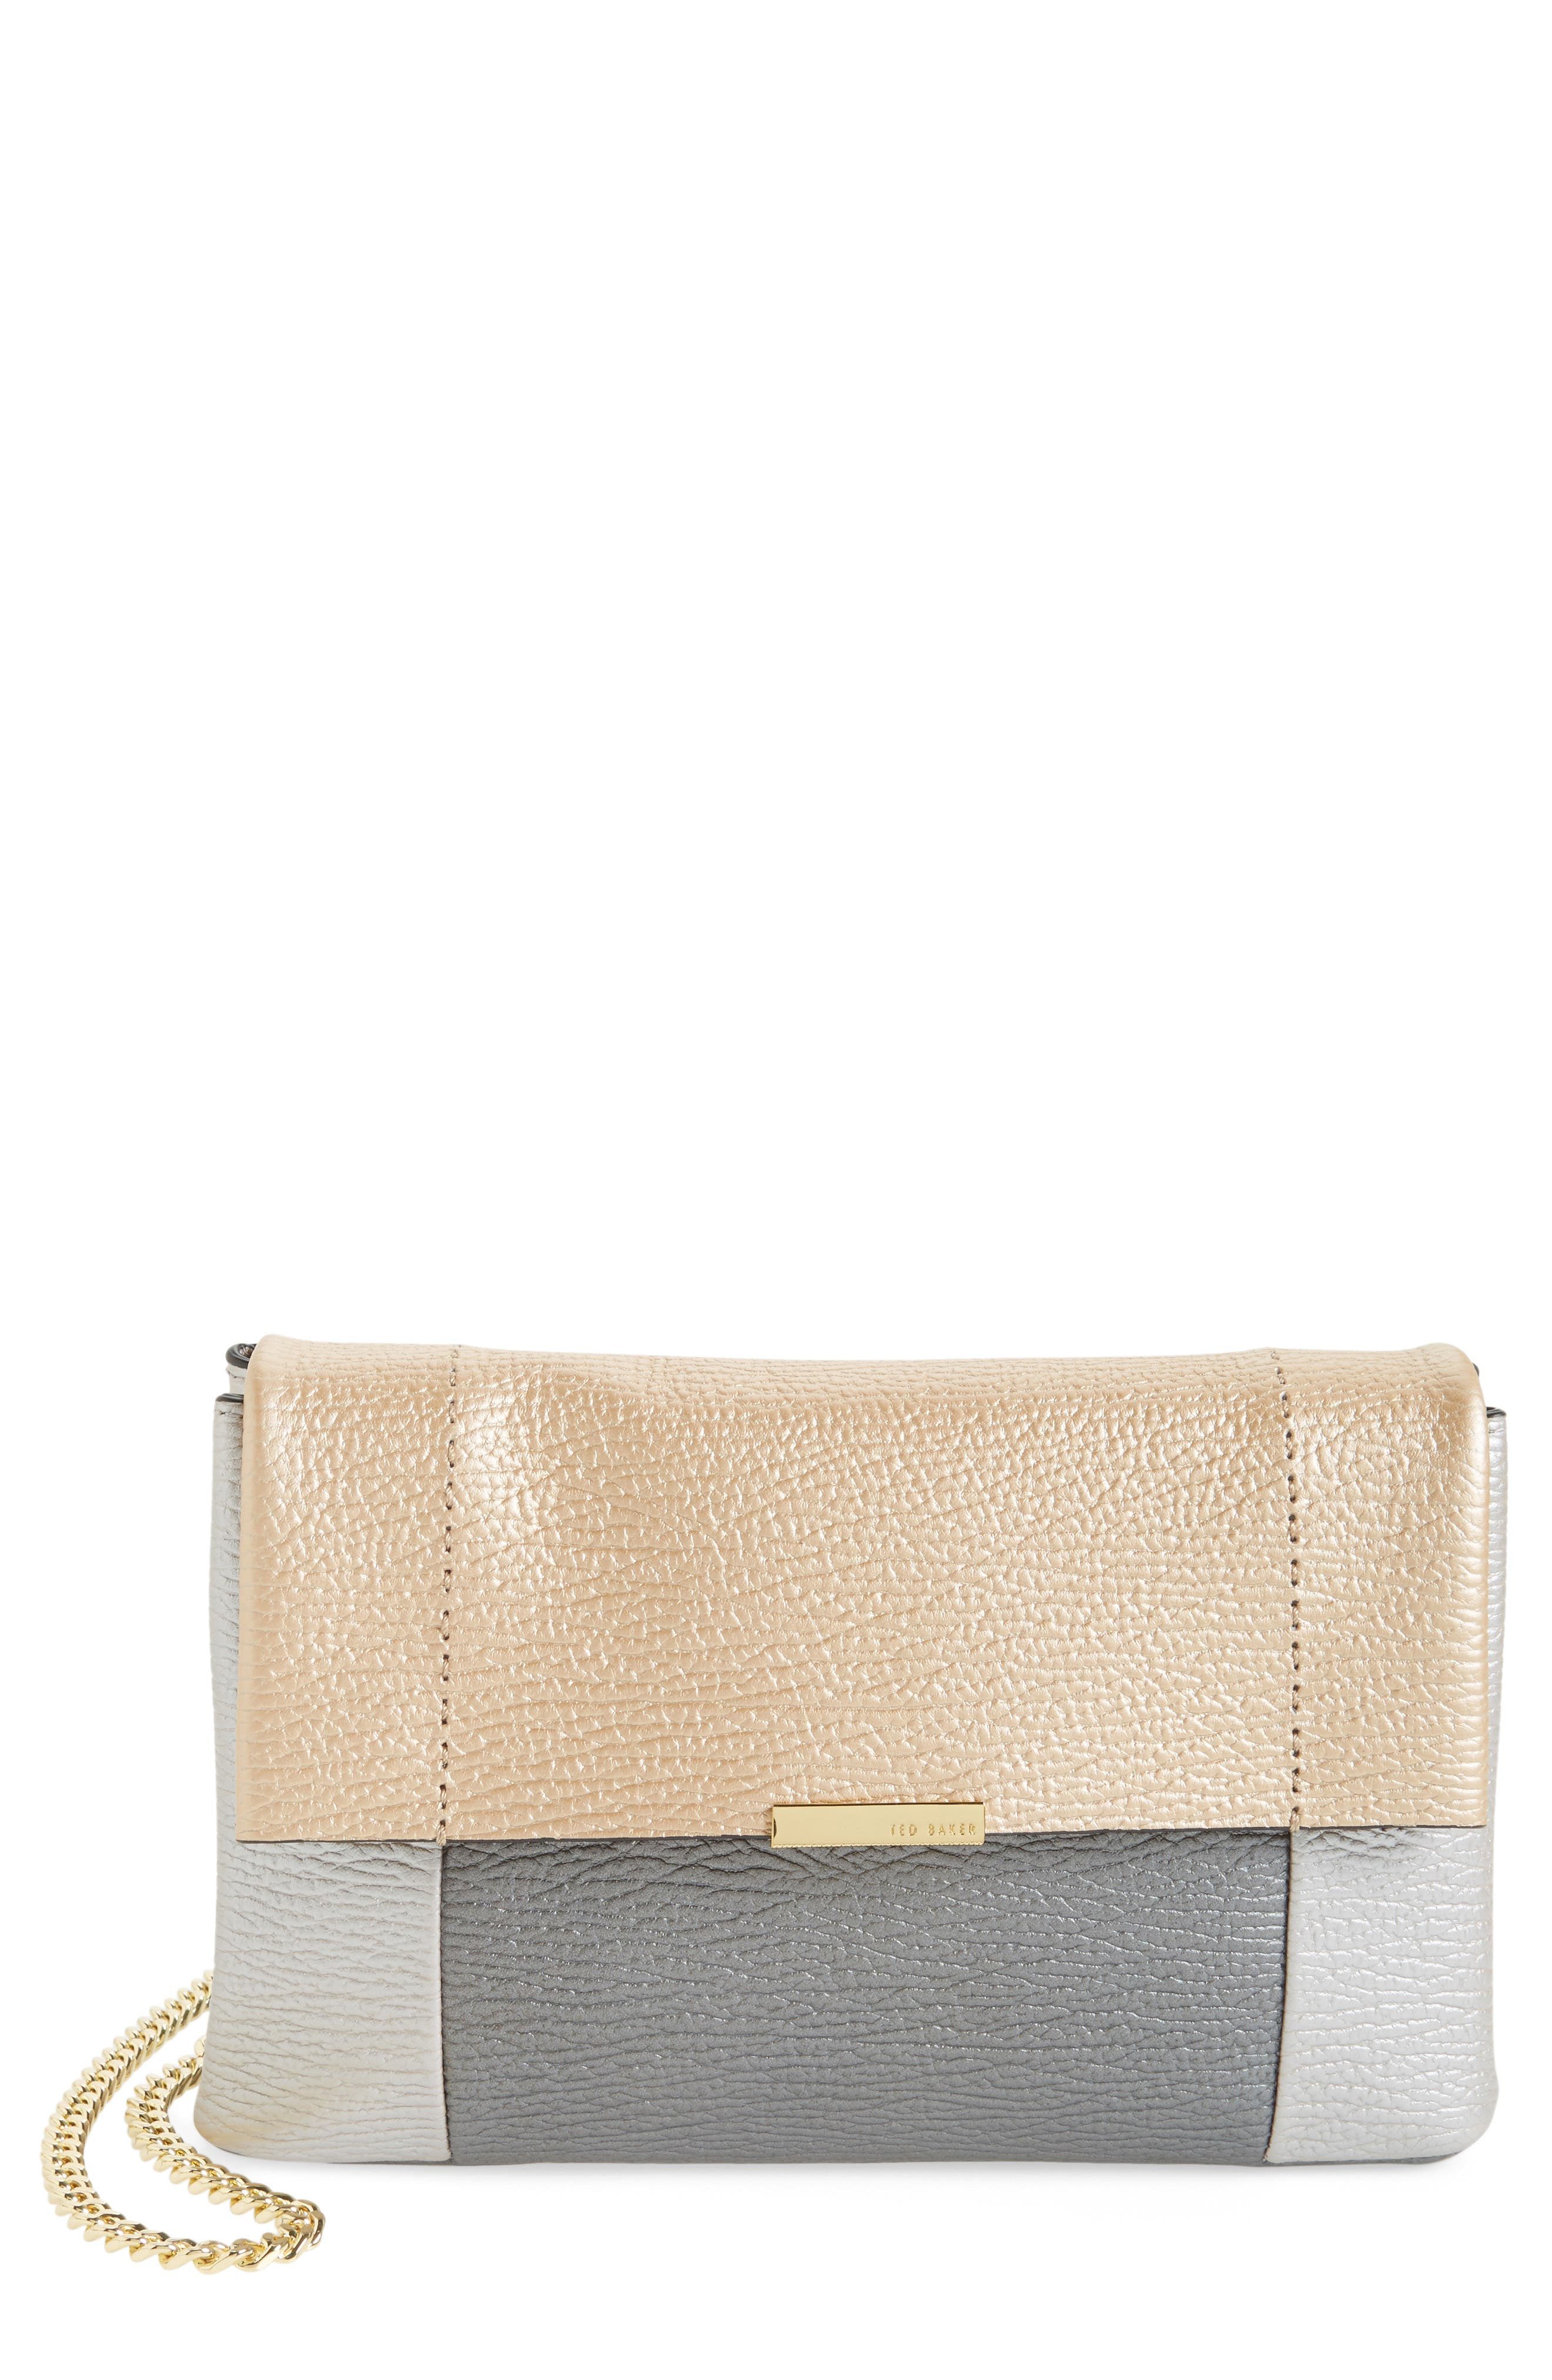 Alternate Image 1 Selected - Ted Baker London 'Parson' Pebbled Leather Crossbody Bag